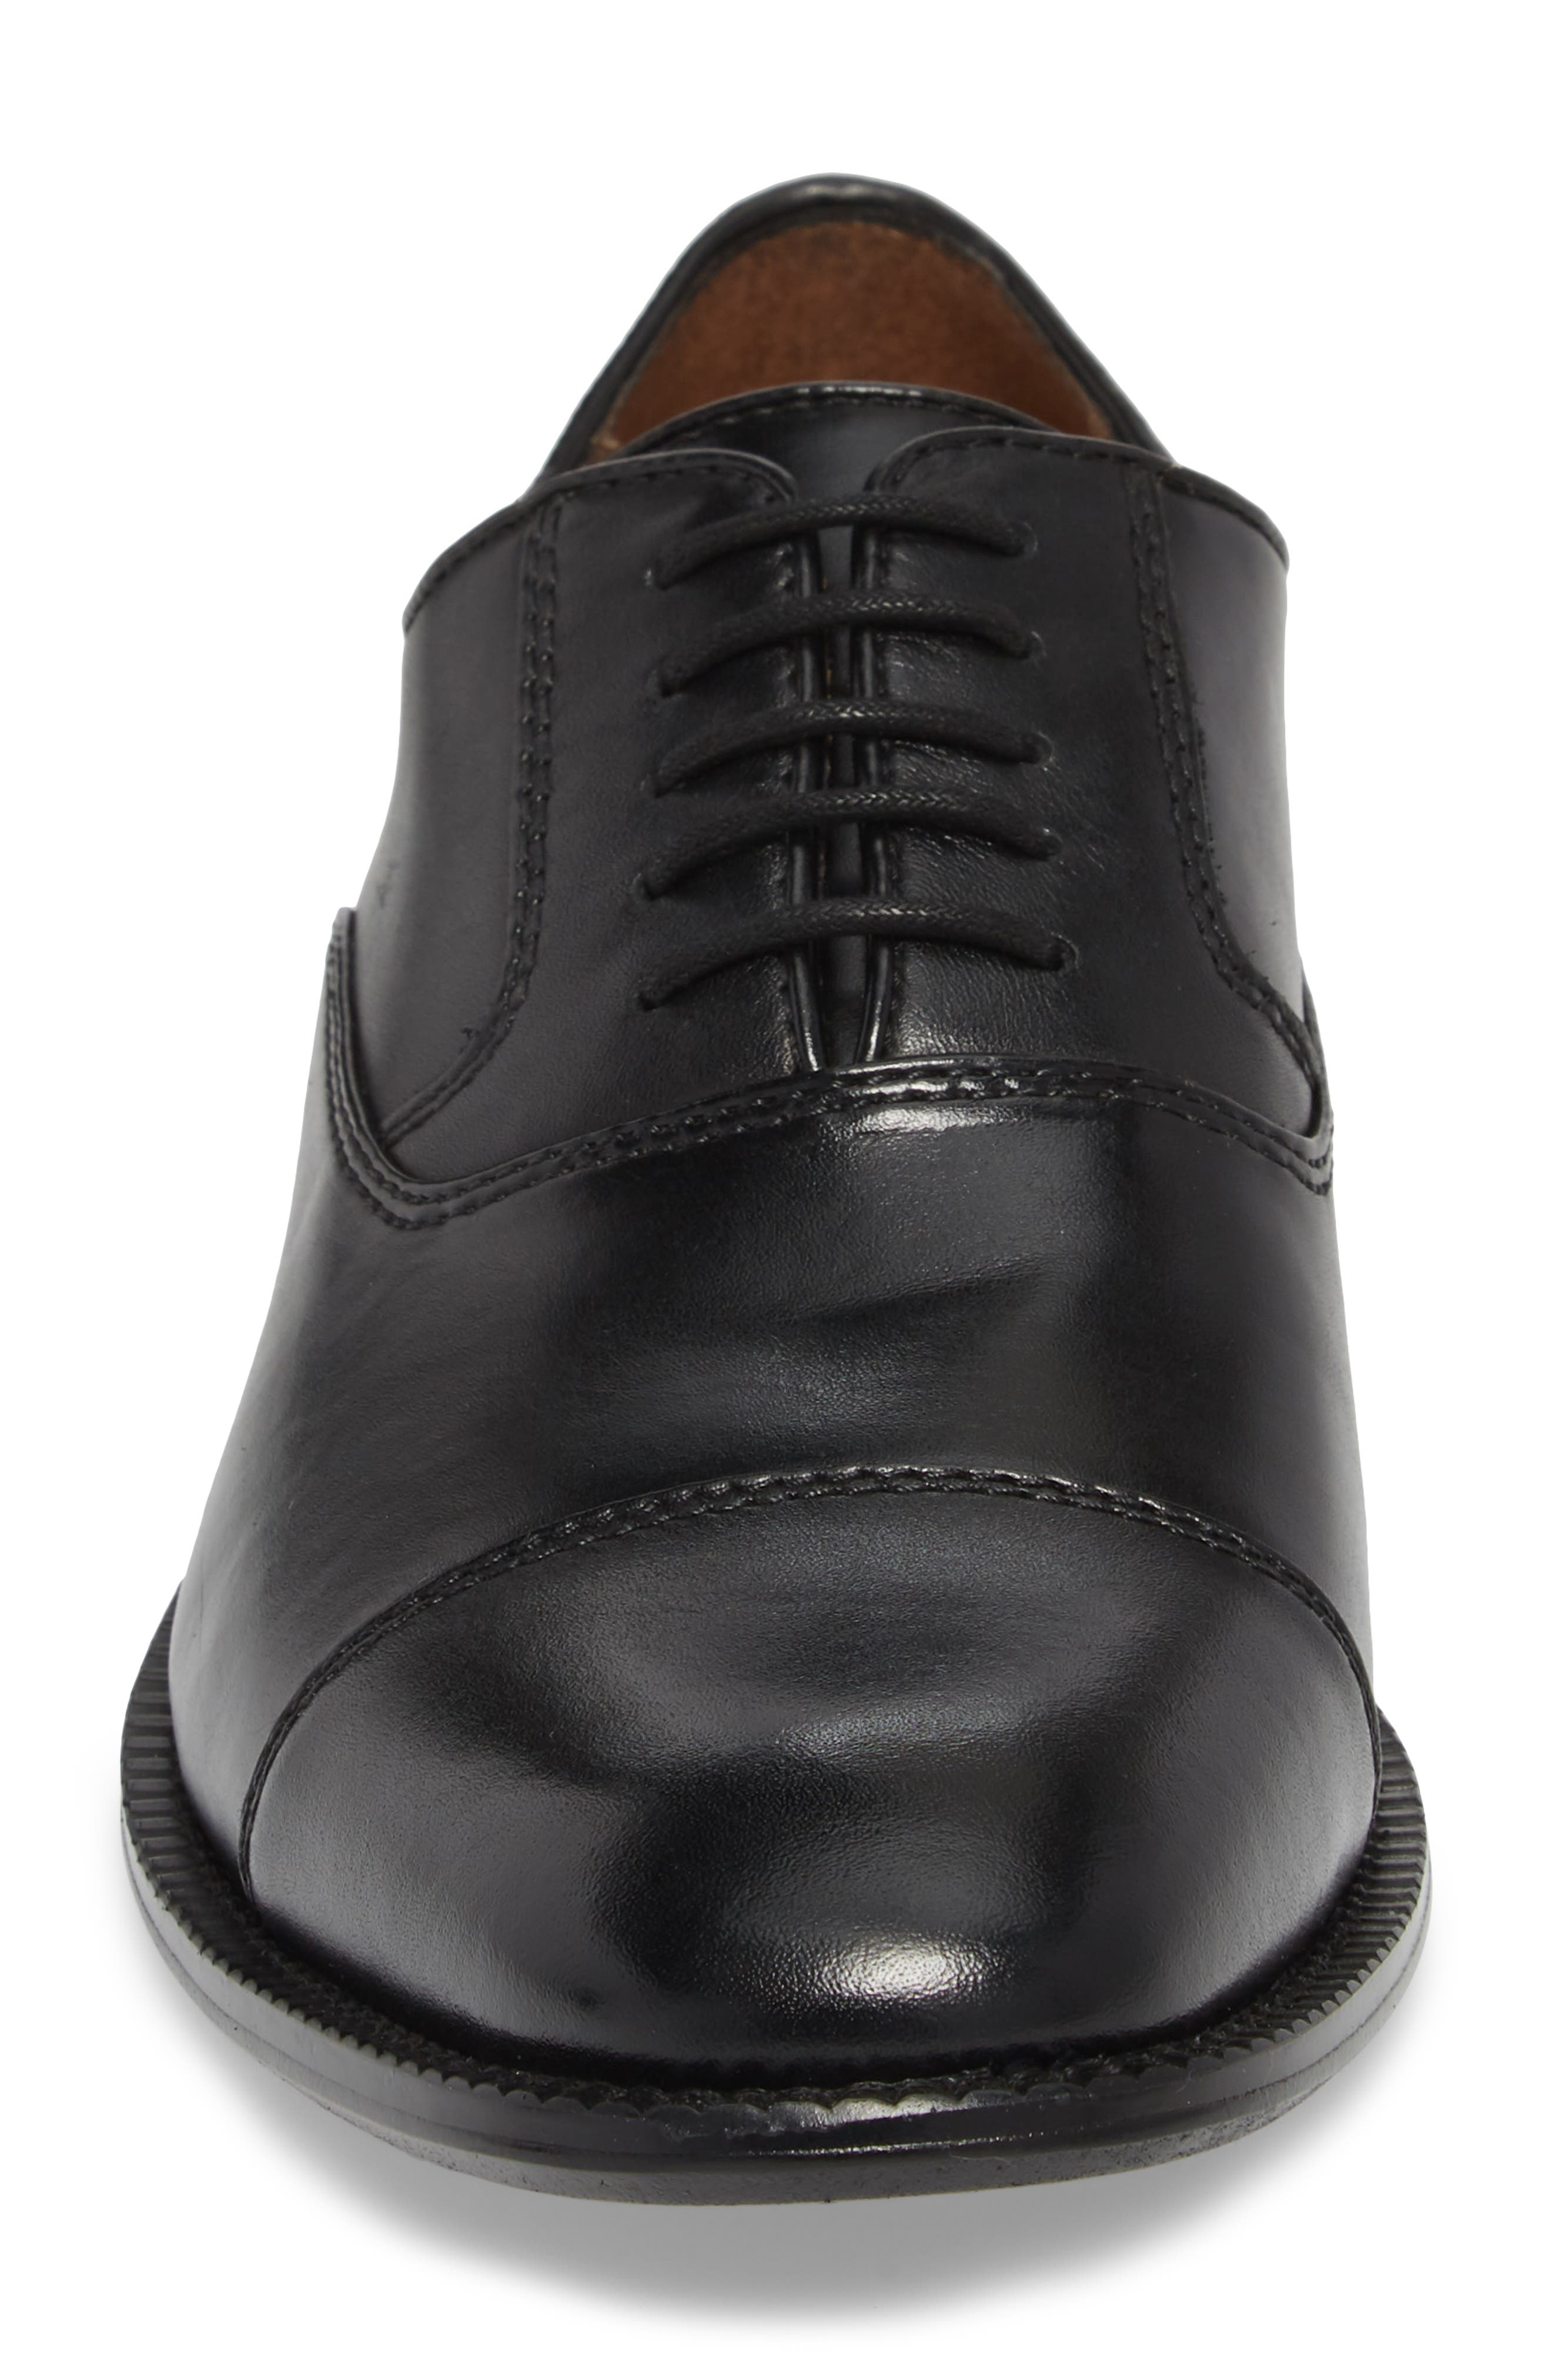 KENNETH COLE NEW YORK, Dice Cap Toe Oxford, Alternate thumbnail 4, color, BLACK LEATHER